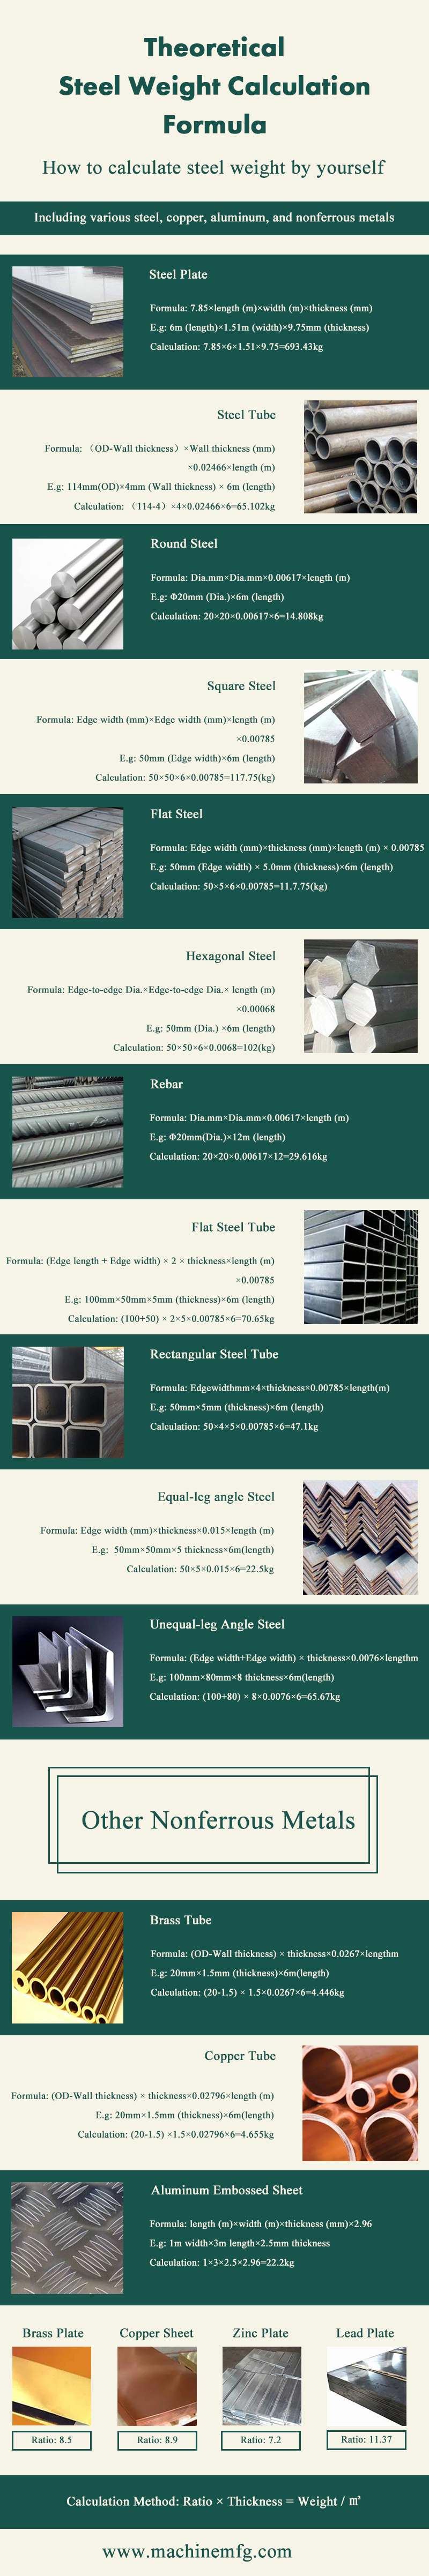 Theoretical Steel Weight: How to Make Your Own Calculations - Infographic